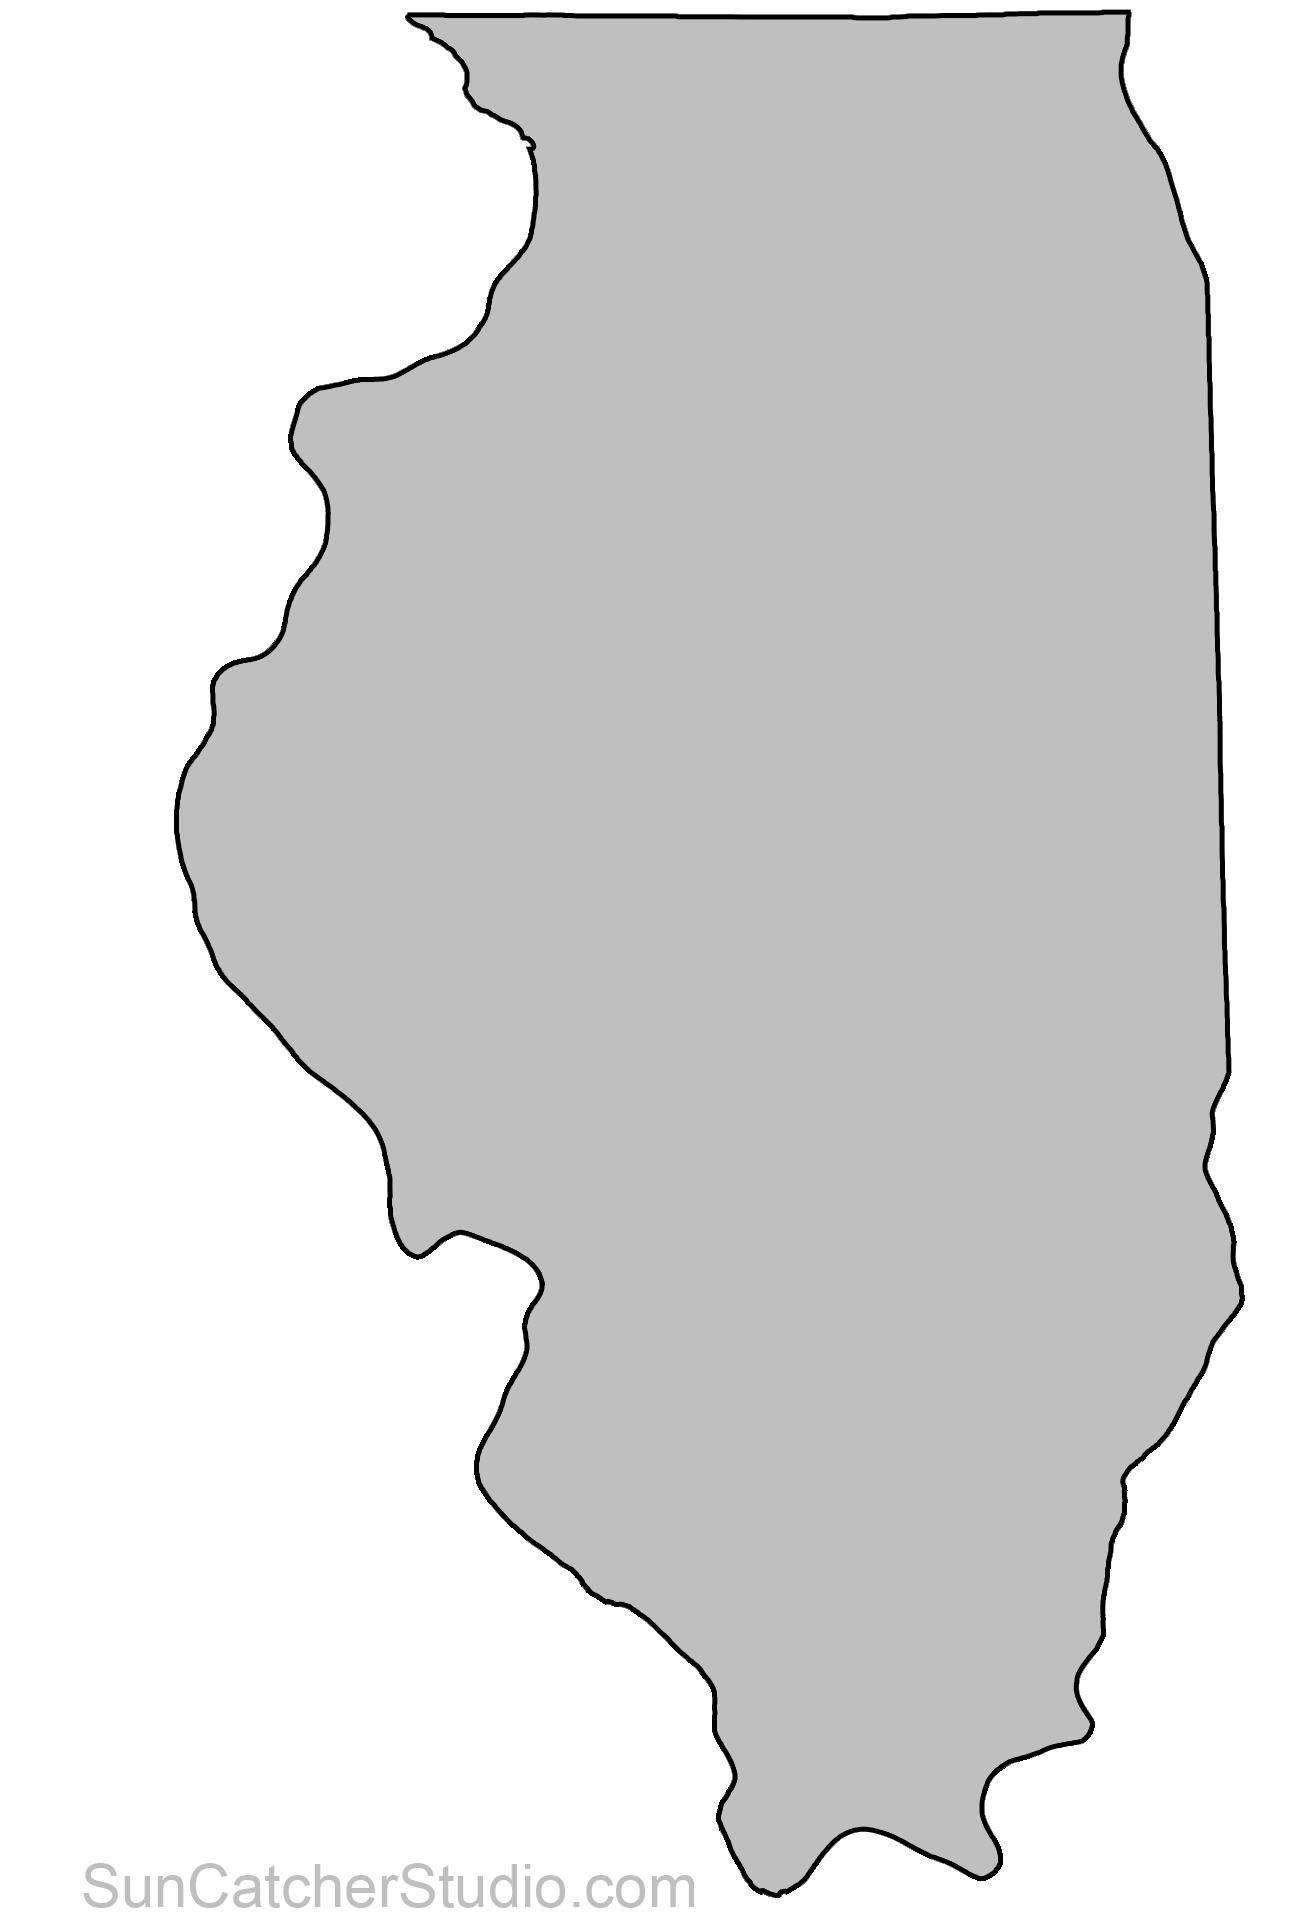 Illinois outline png. State outlines maps stencils